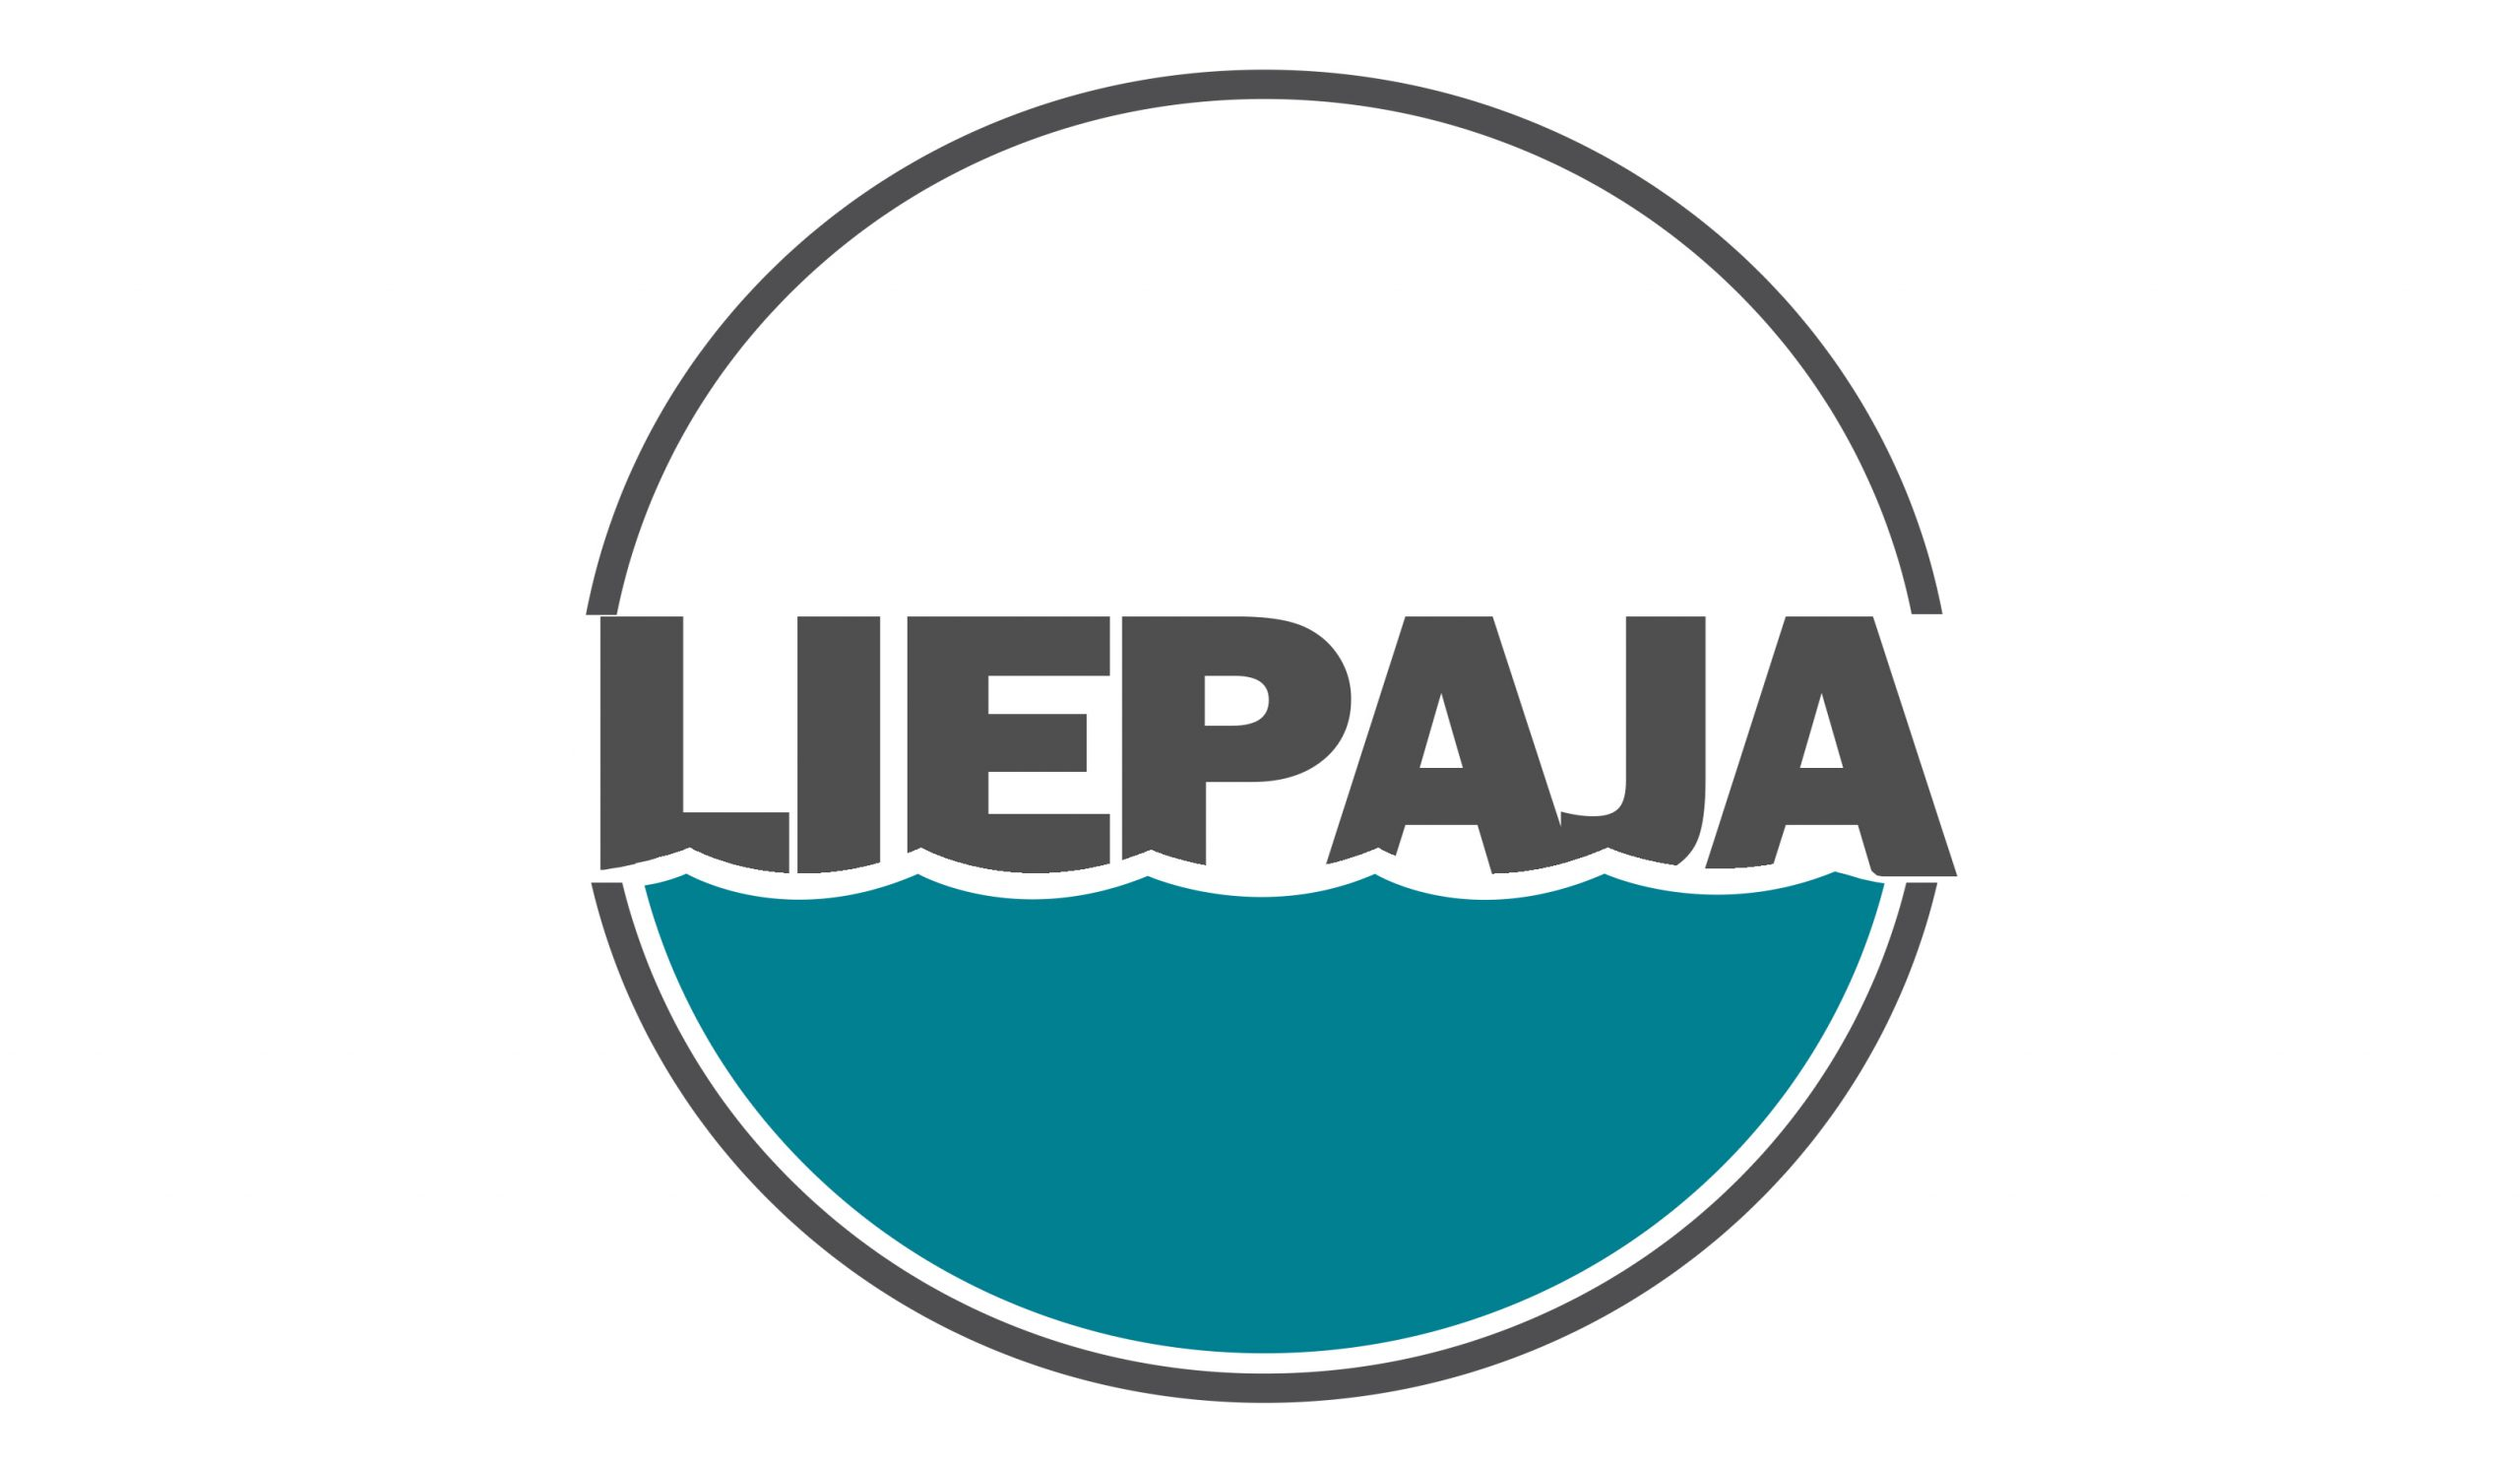 Project results - Liepaja